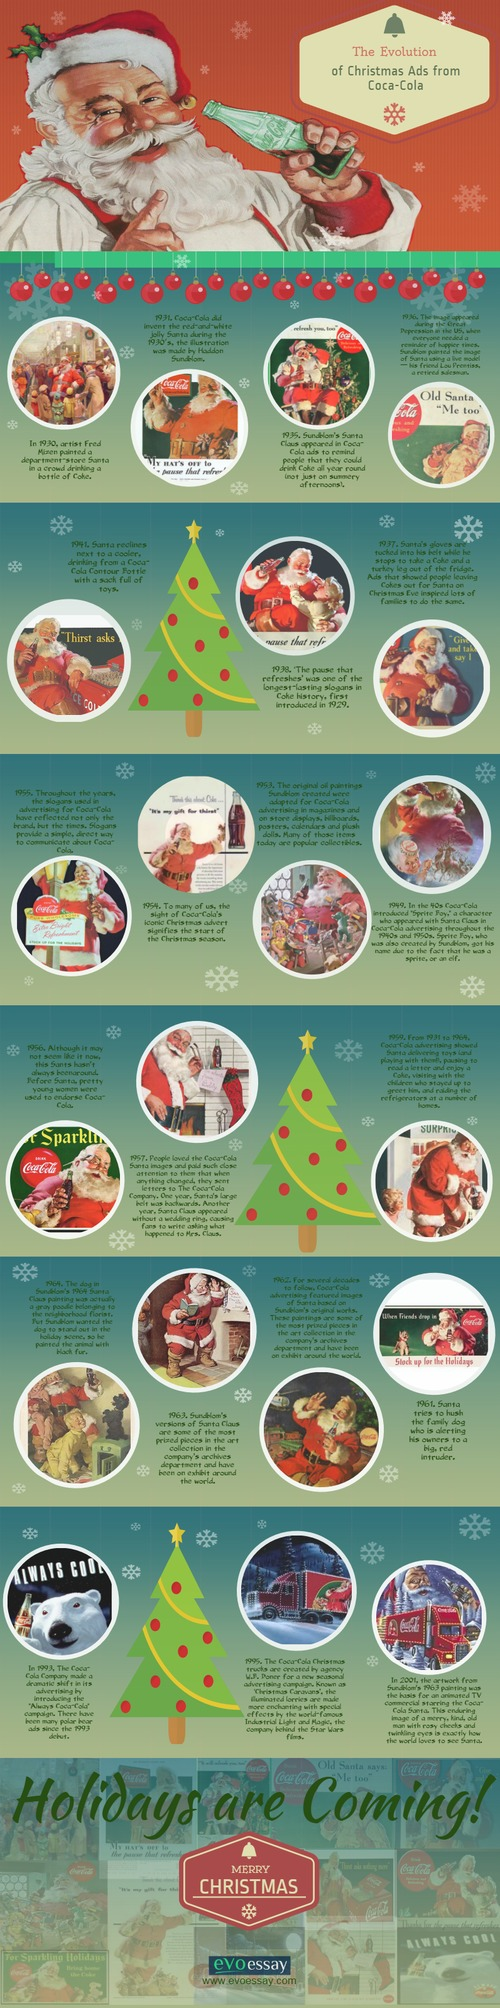 Evolution of Christmas Ads from Coca-Cola [Infographic]